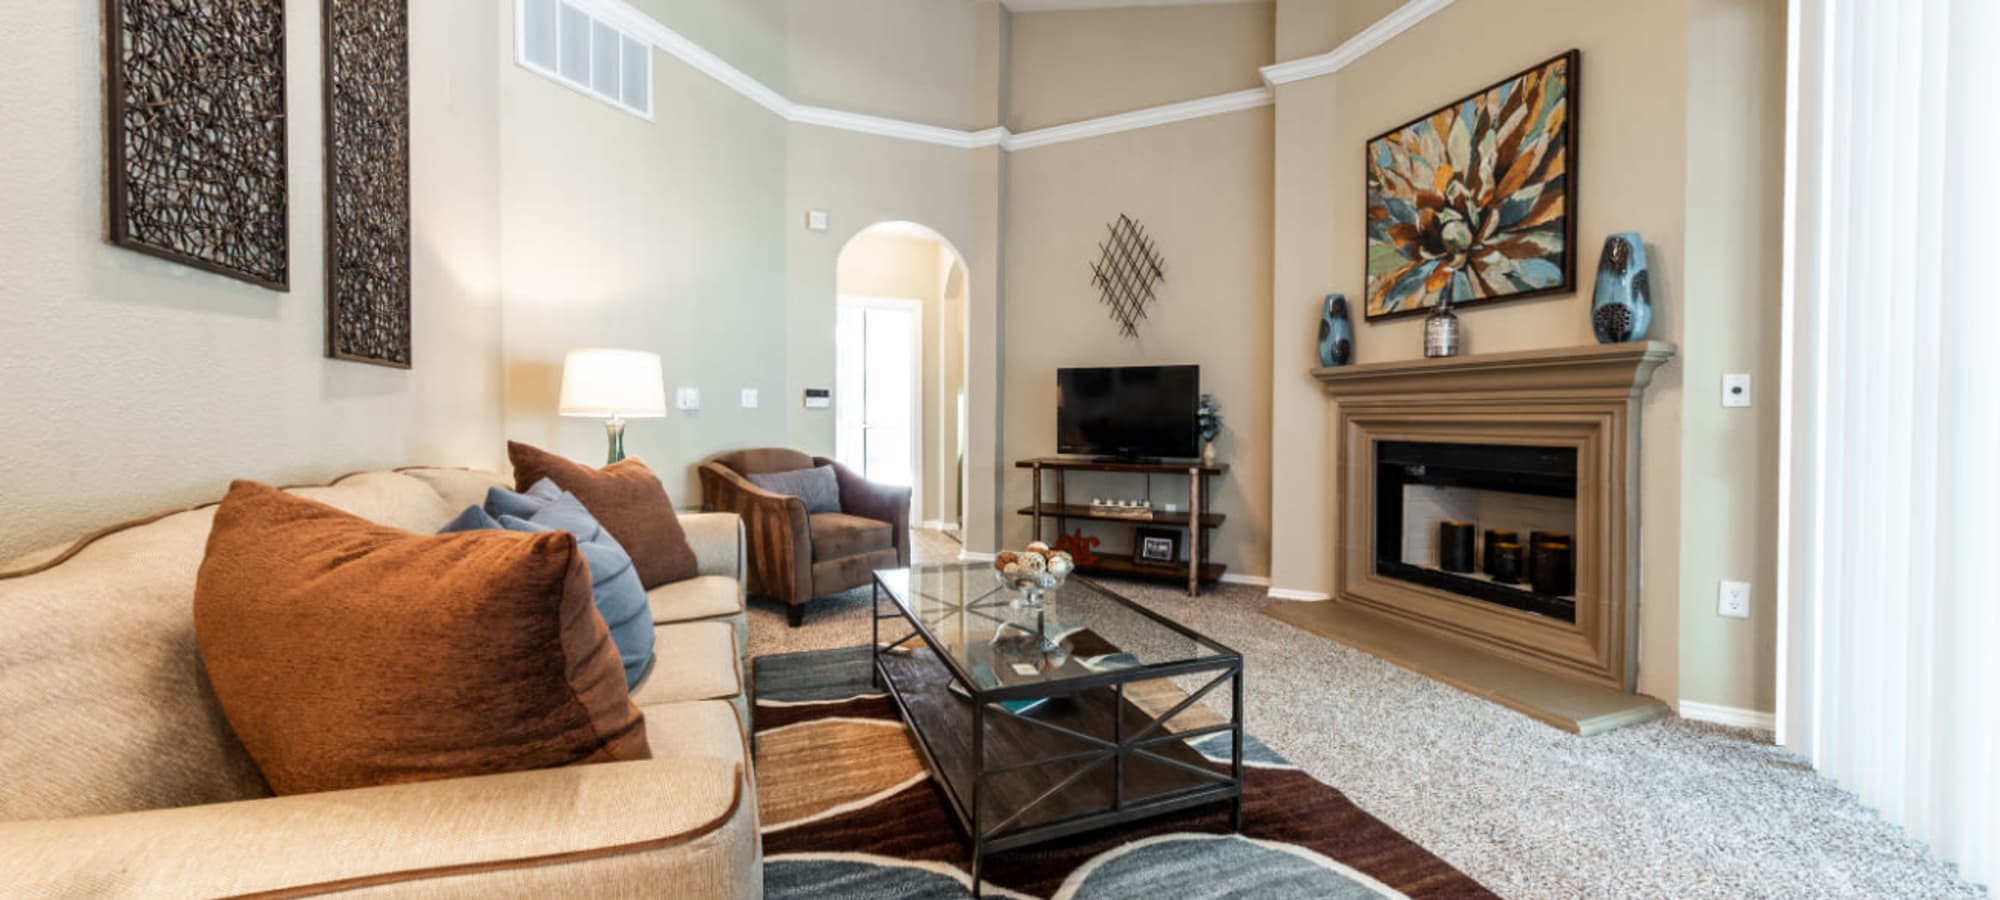 Apply to live at Marquis at Waterview in Richardson, Texas